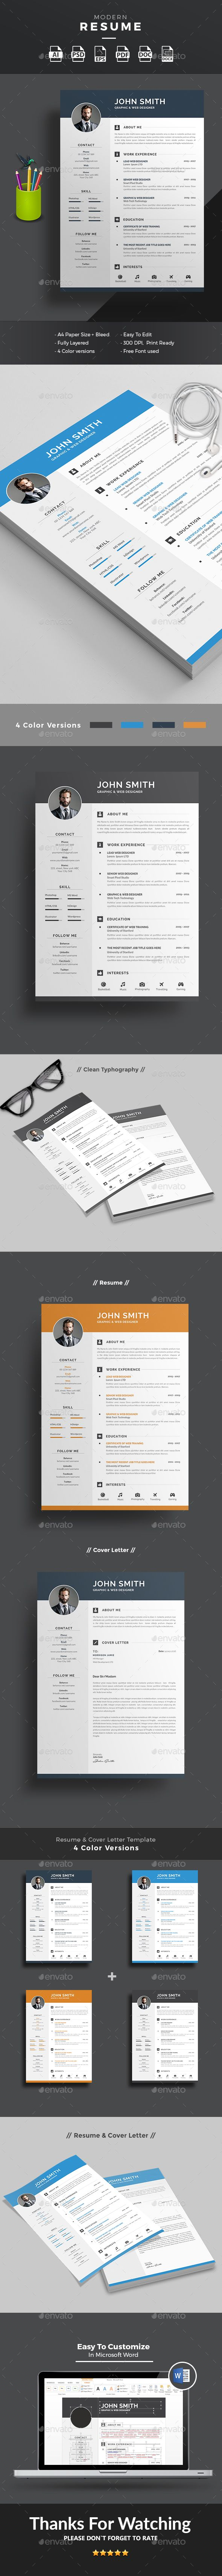 Resume Template PSD, AI Illustrator, MS Word. Download here: https://graphicriver.net/item/resume/17494830?ref=ksioks